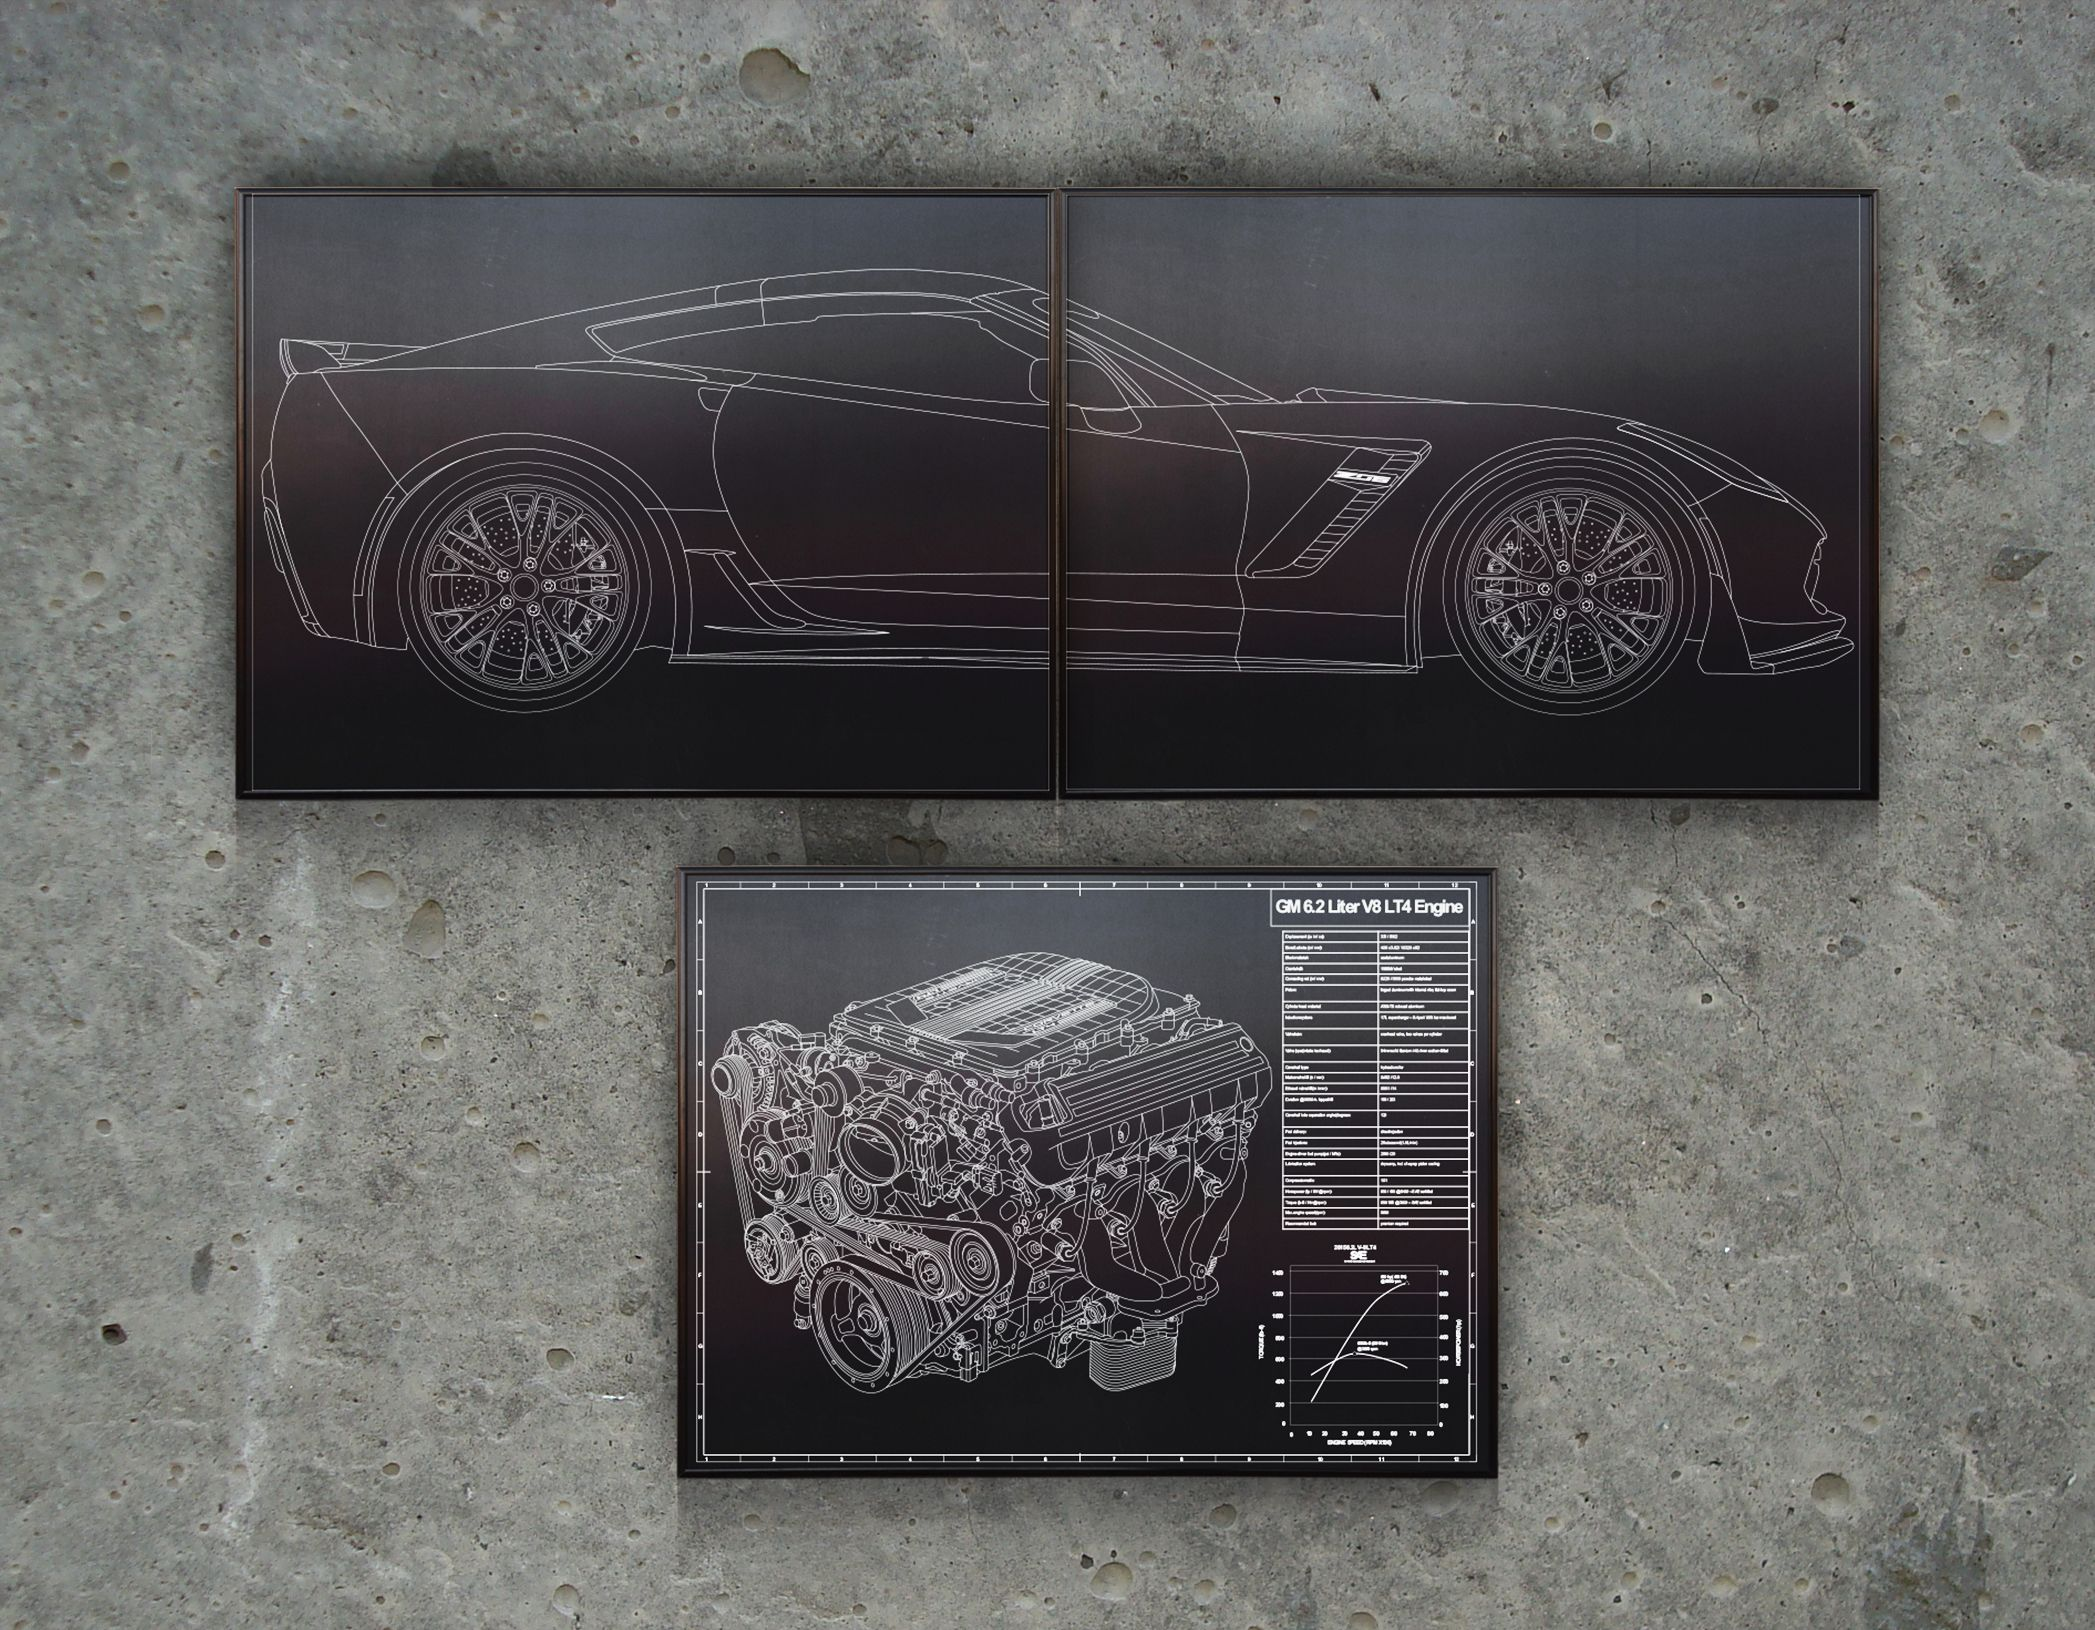 Corvette c7 z06 laser engraved blueprint art laser engraved engraved blueprint art specializes in custom drawn and laser engraved blueprint dcor for your garage man cave business or office auto art plane art malvernweather